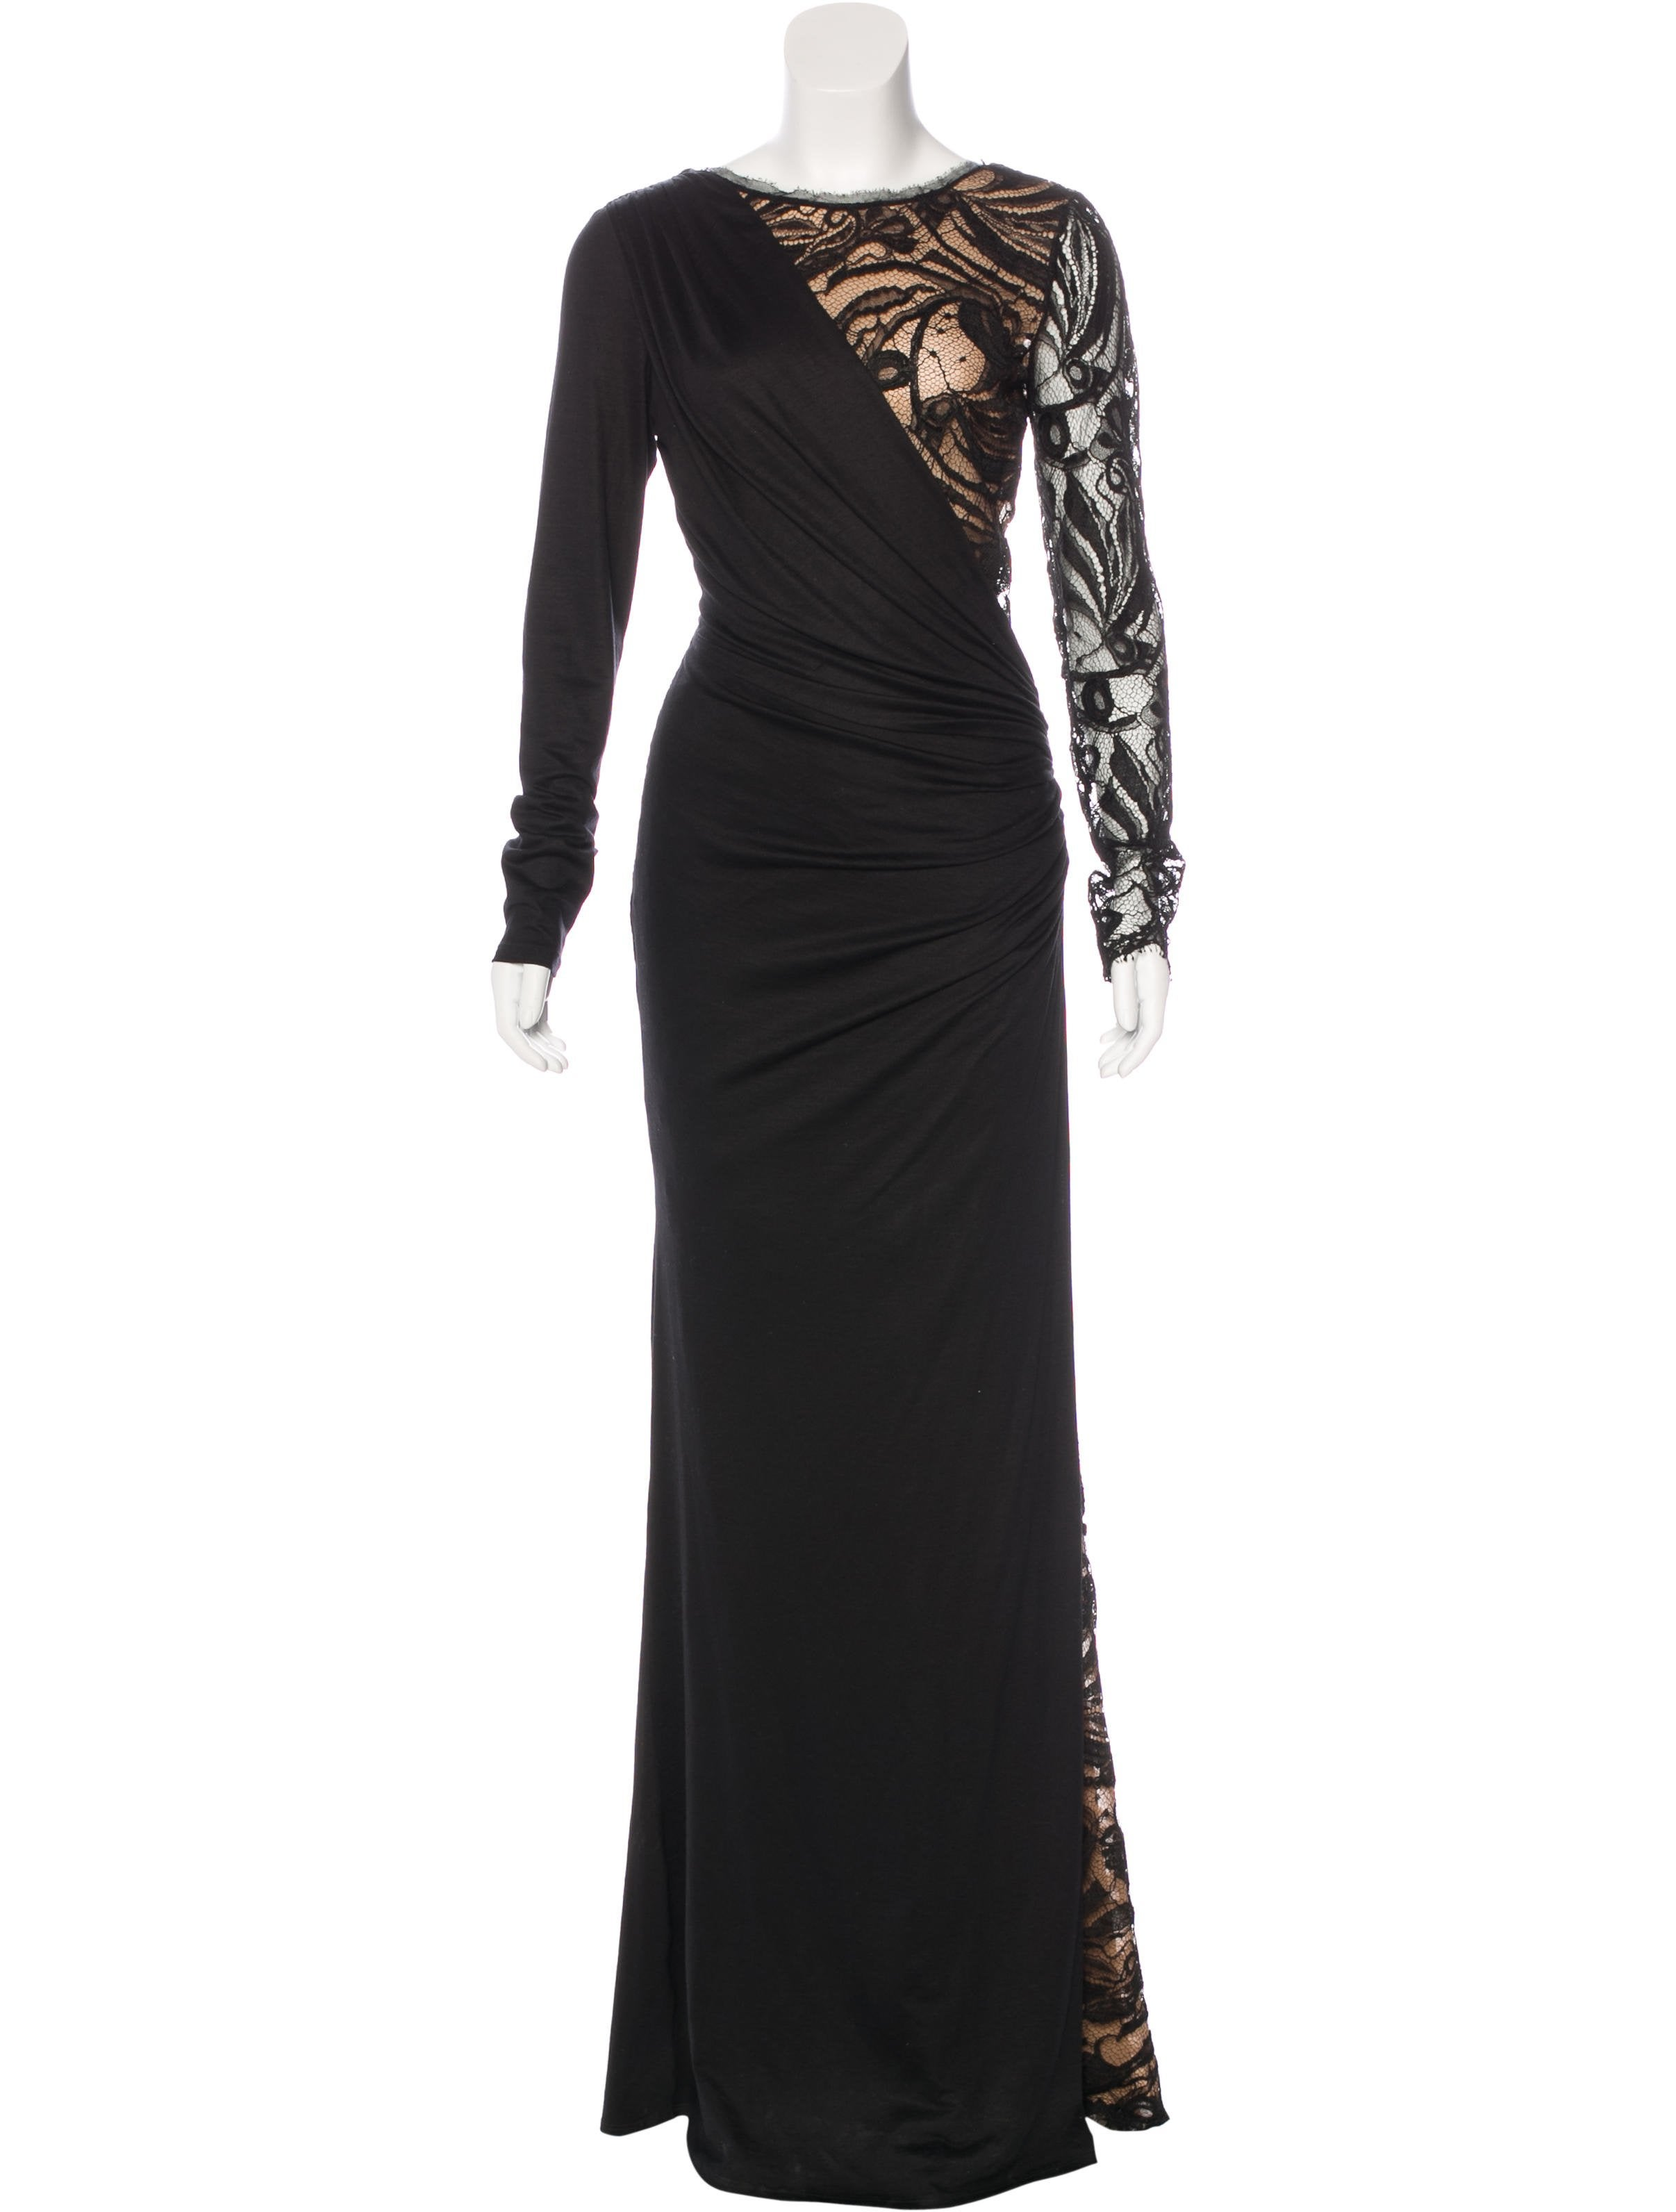 Emilio Pucci Lace Evening Dress - Clothing